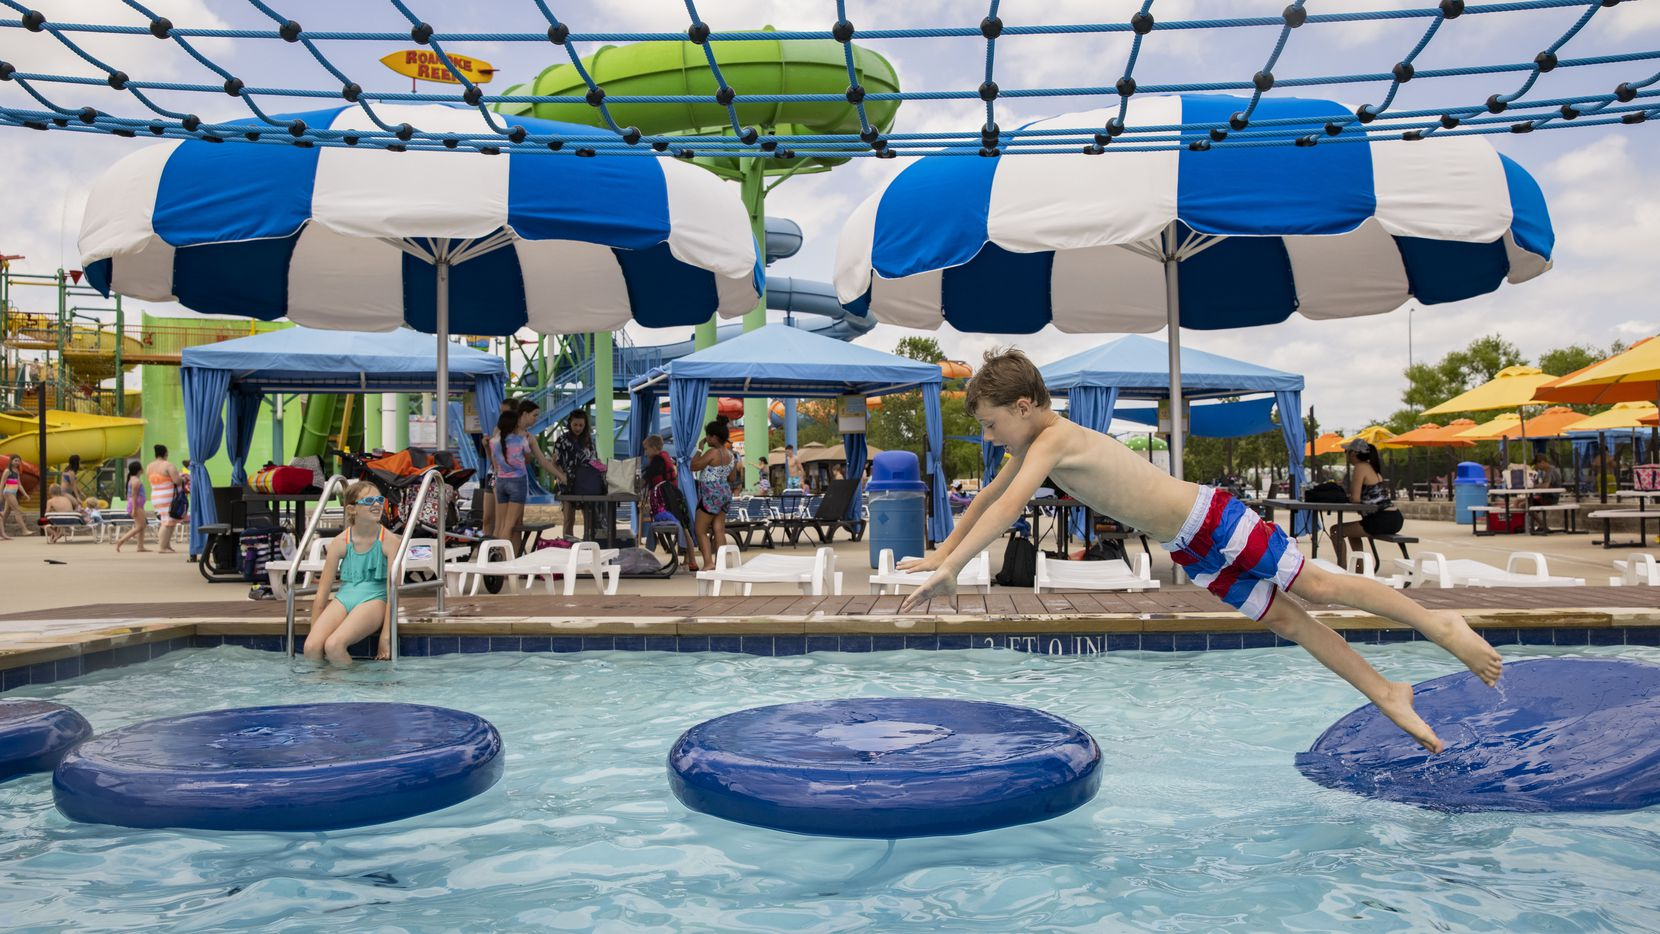 Rivers Garrett, 7, of Haslet jumps from pad to pad while trying out the Coconut Cove obstacle course at Hawaiian Falls in Roanoke.